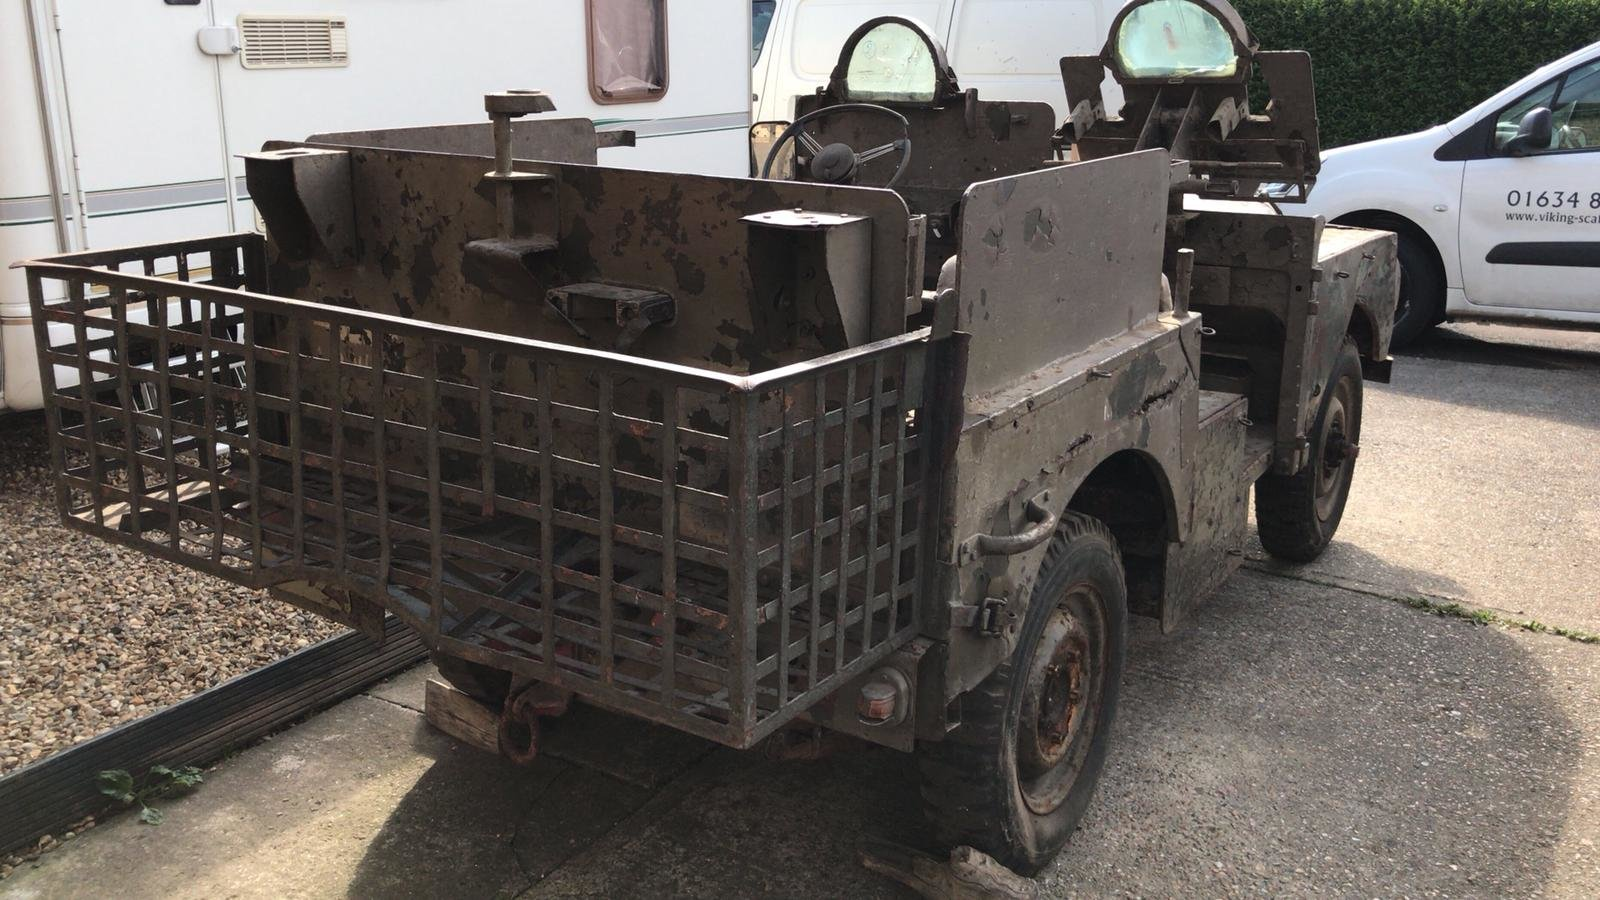 1952 Land Rover ser1  Armoured sas vehicle  For Sale (picture 3 of 6)